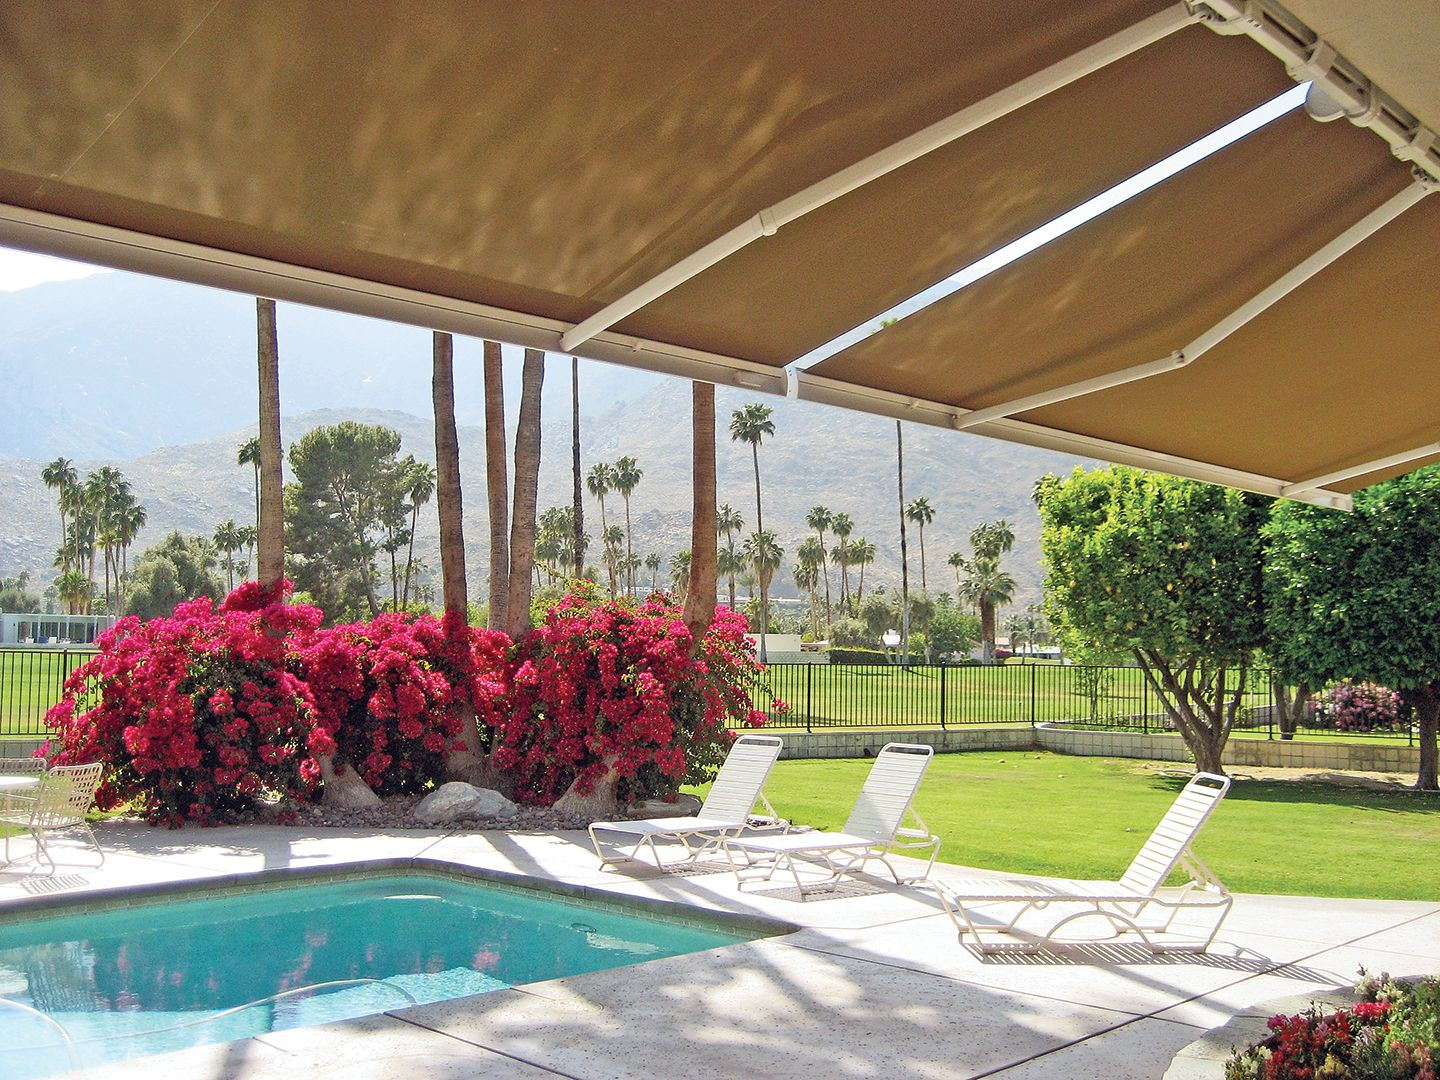 Shown Here Is A Nuimage Pro Series G250 Retractable Patio Awning